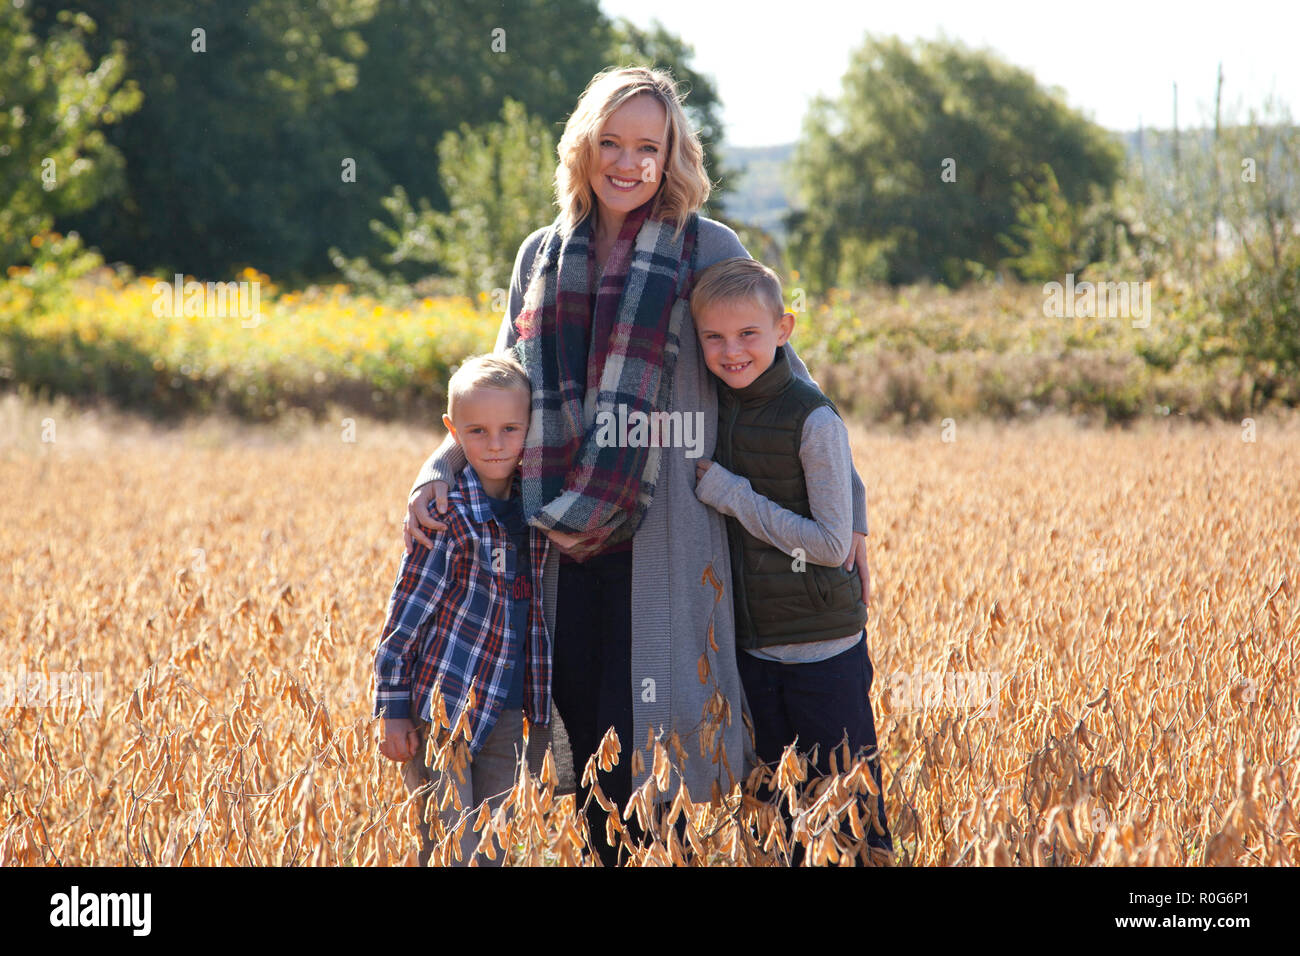 A beautiful smiling mom puts her arms around her two sweet sons, outside in a field - Stock Image